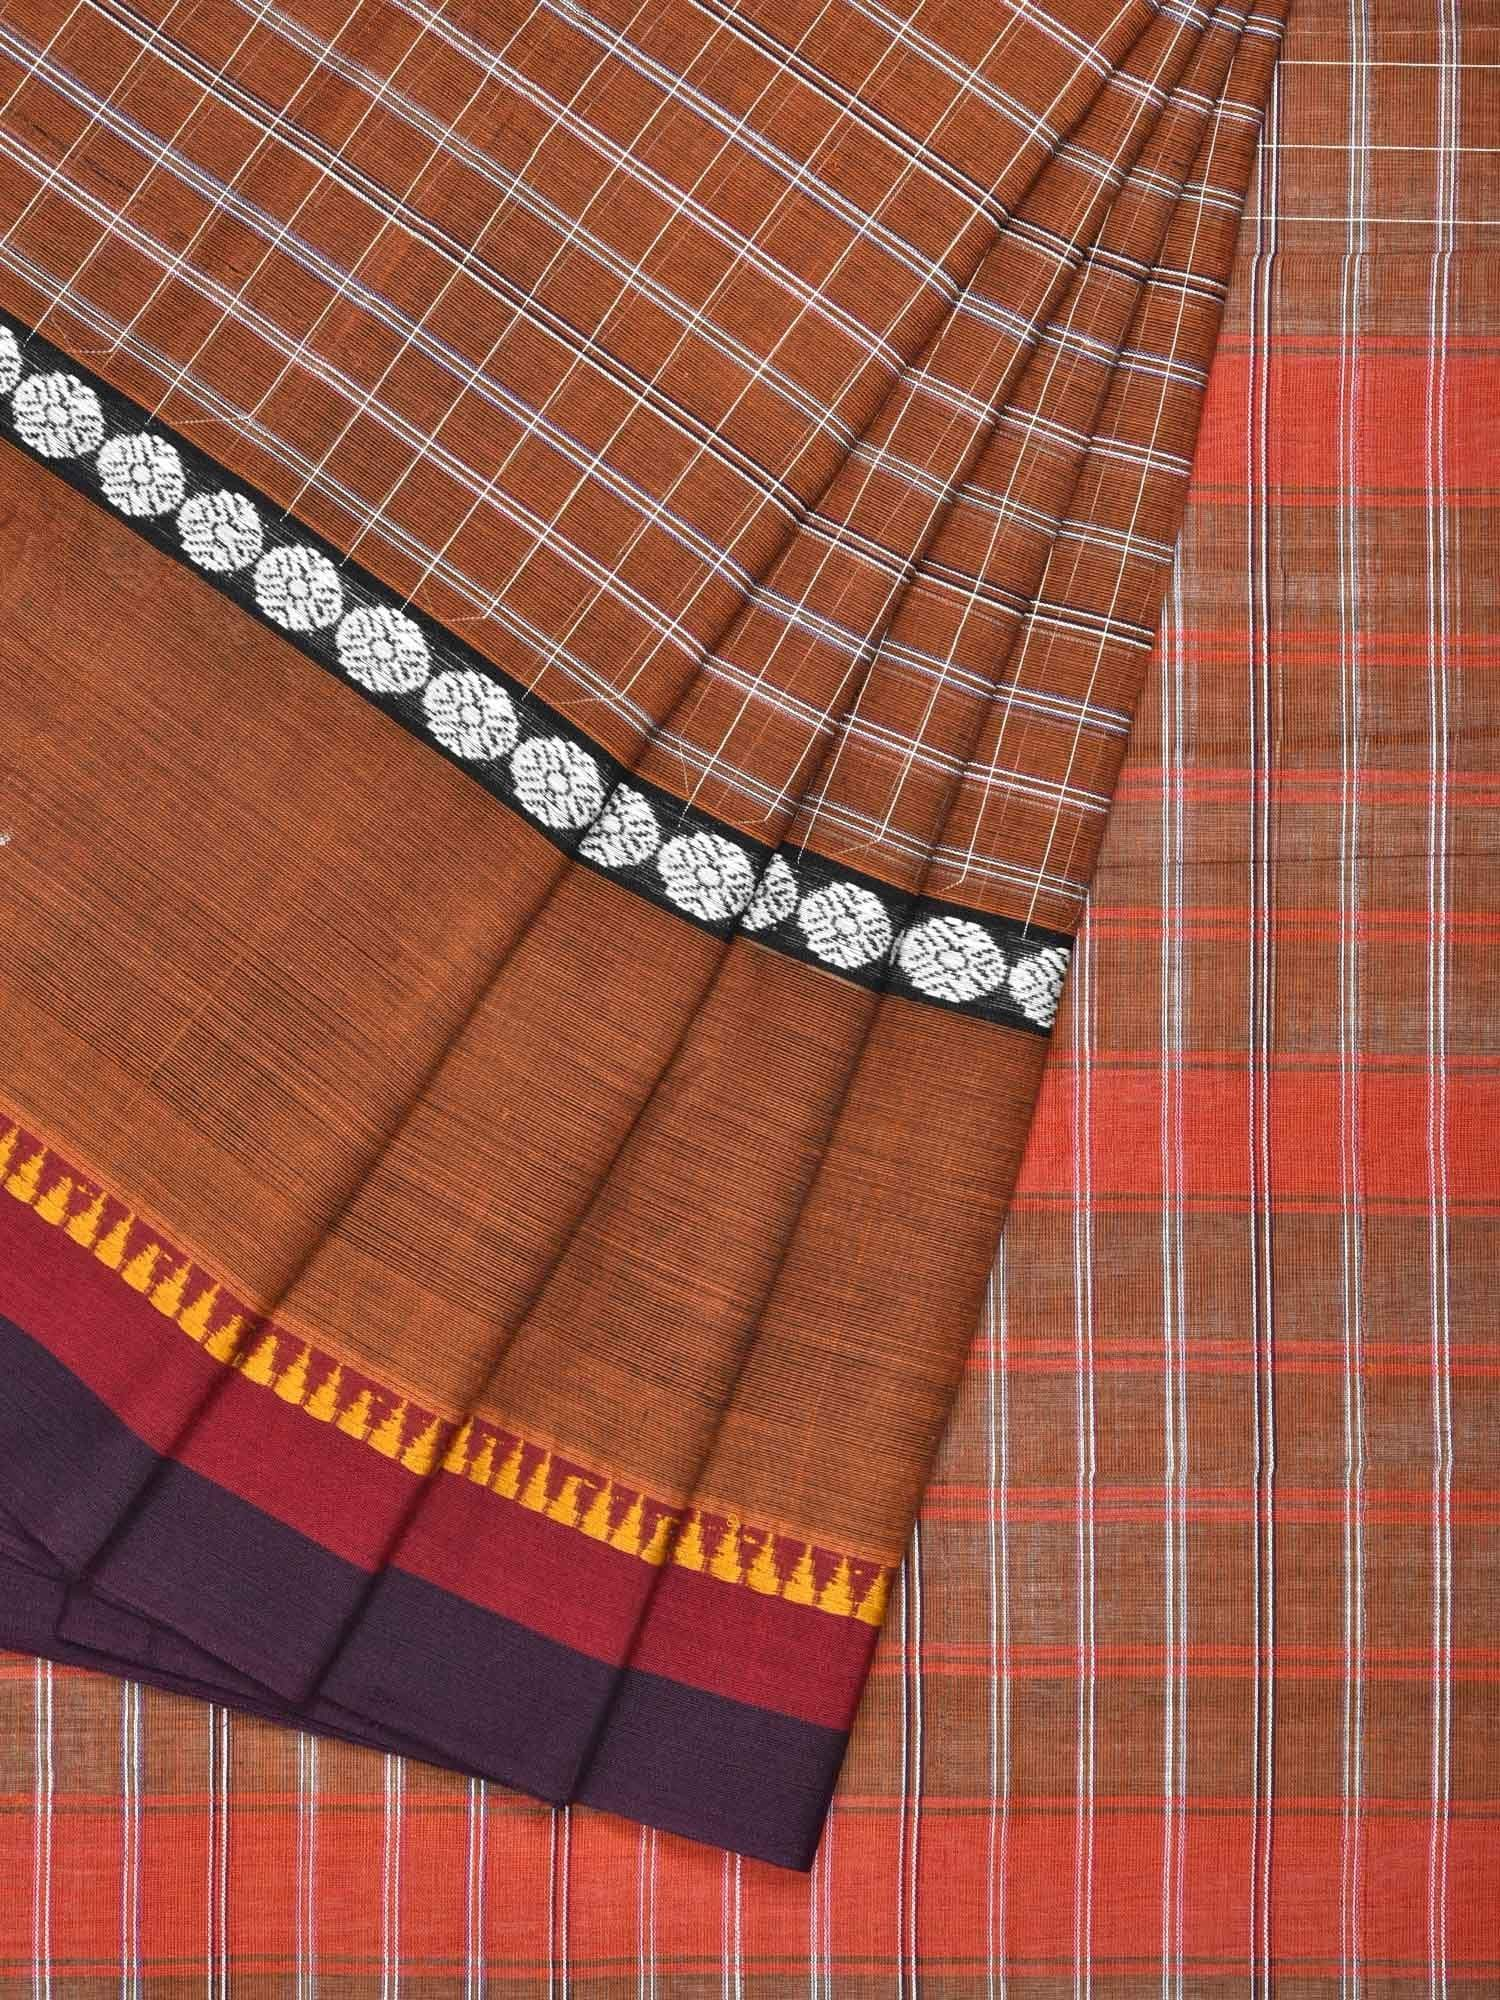 Brown Narayanpet Cotton Handloom Saree with Checks Design No Blouse np0212